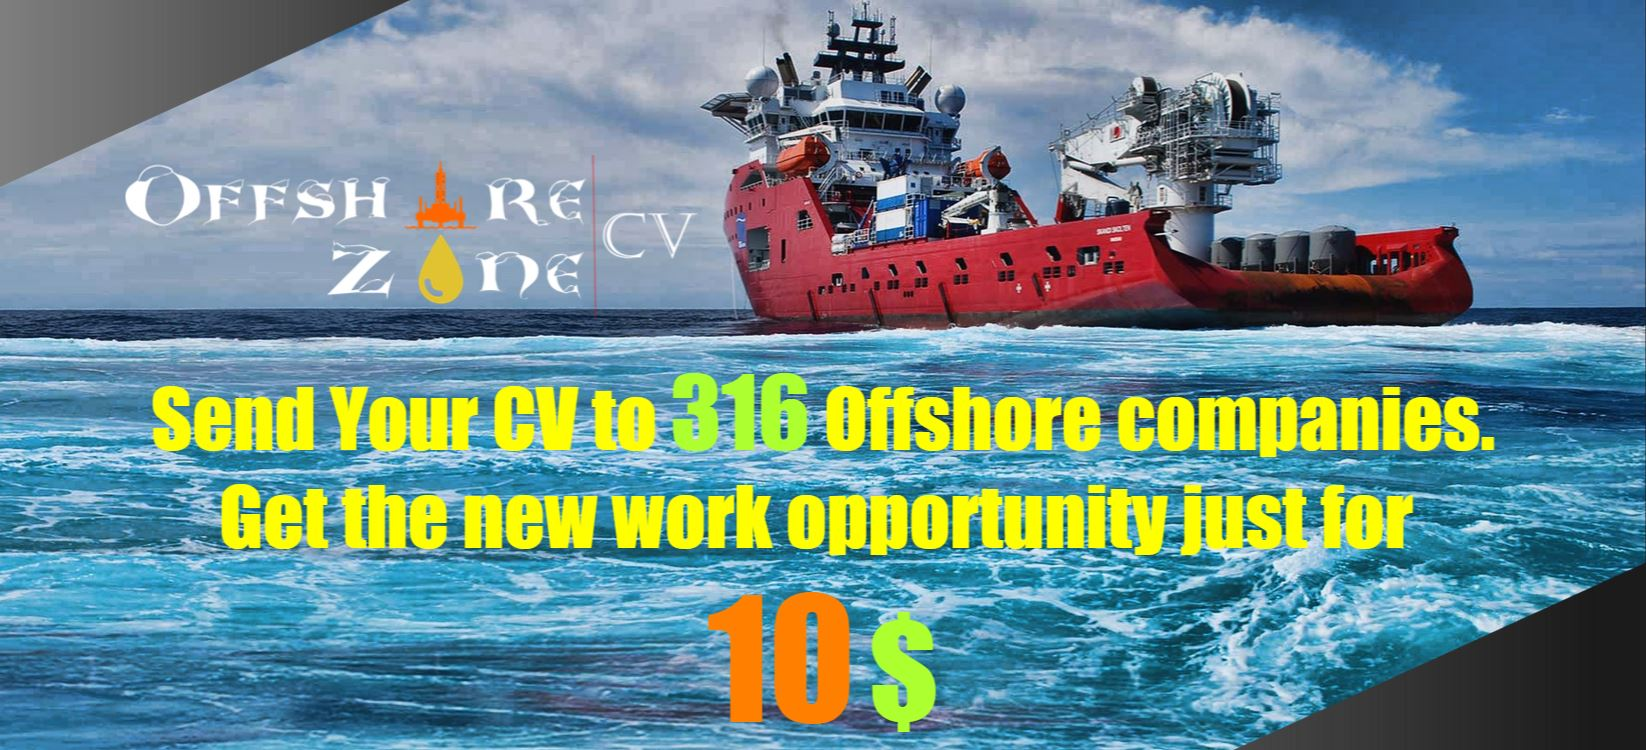 Offshore Zone | CV [Mailer For Seamen / Рассылка CV]